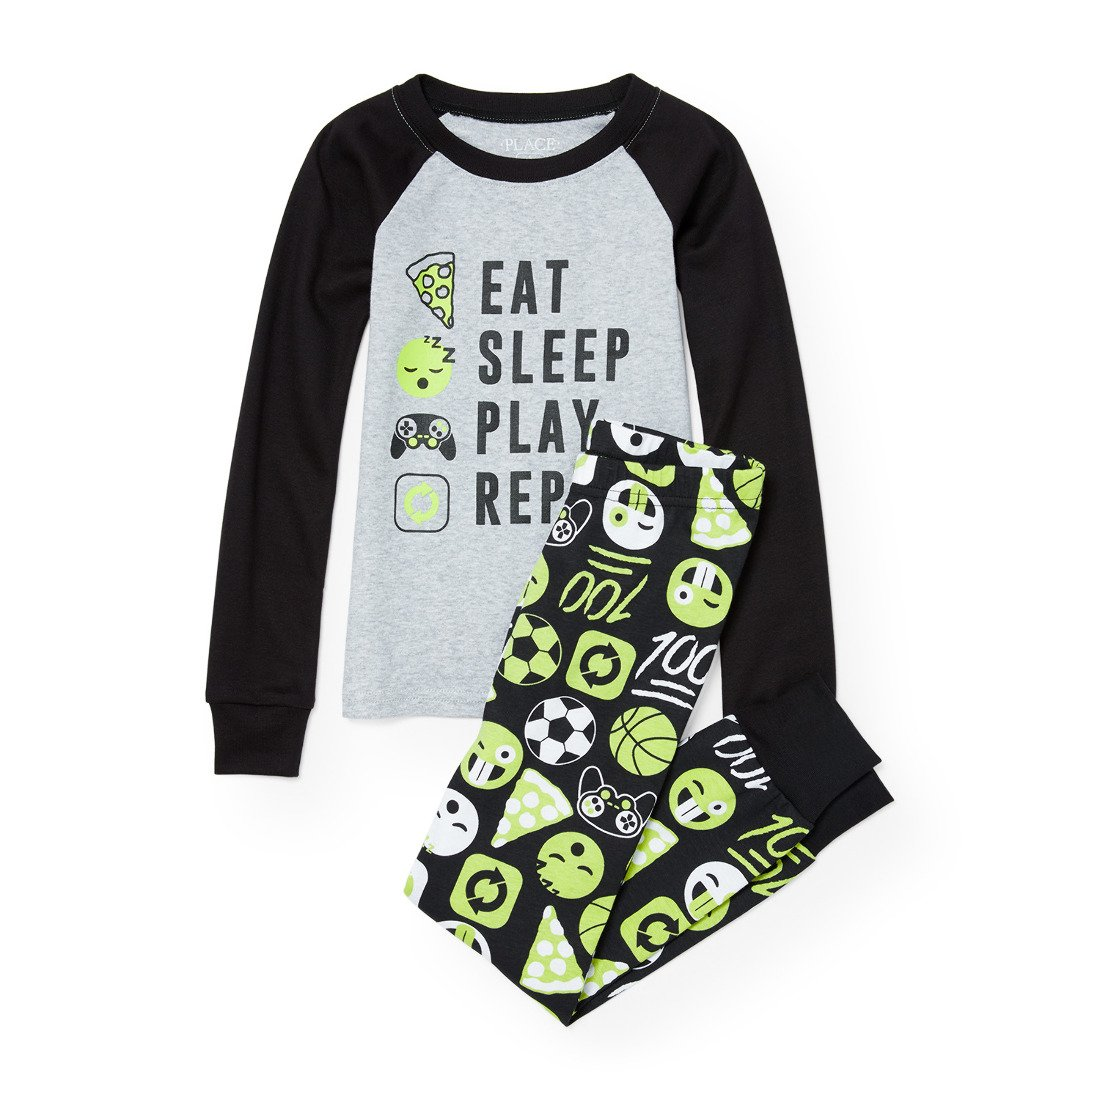 The Children's Place Big Boys' Eat and Sleep List Themed Cotton Pajamas, H/T Mist 90465, 7